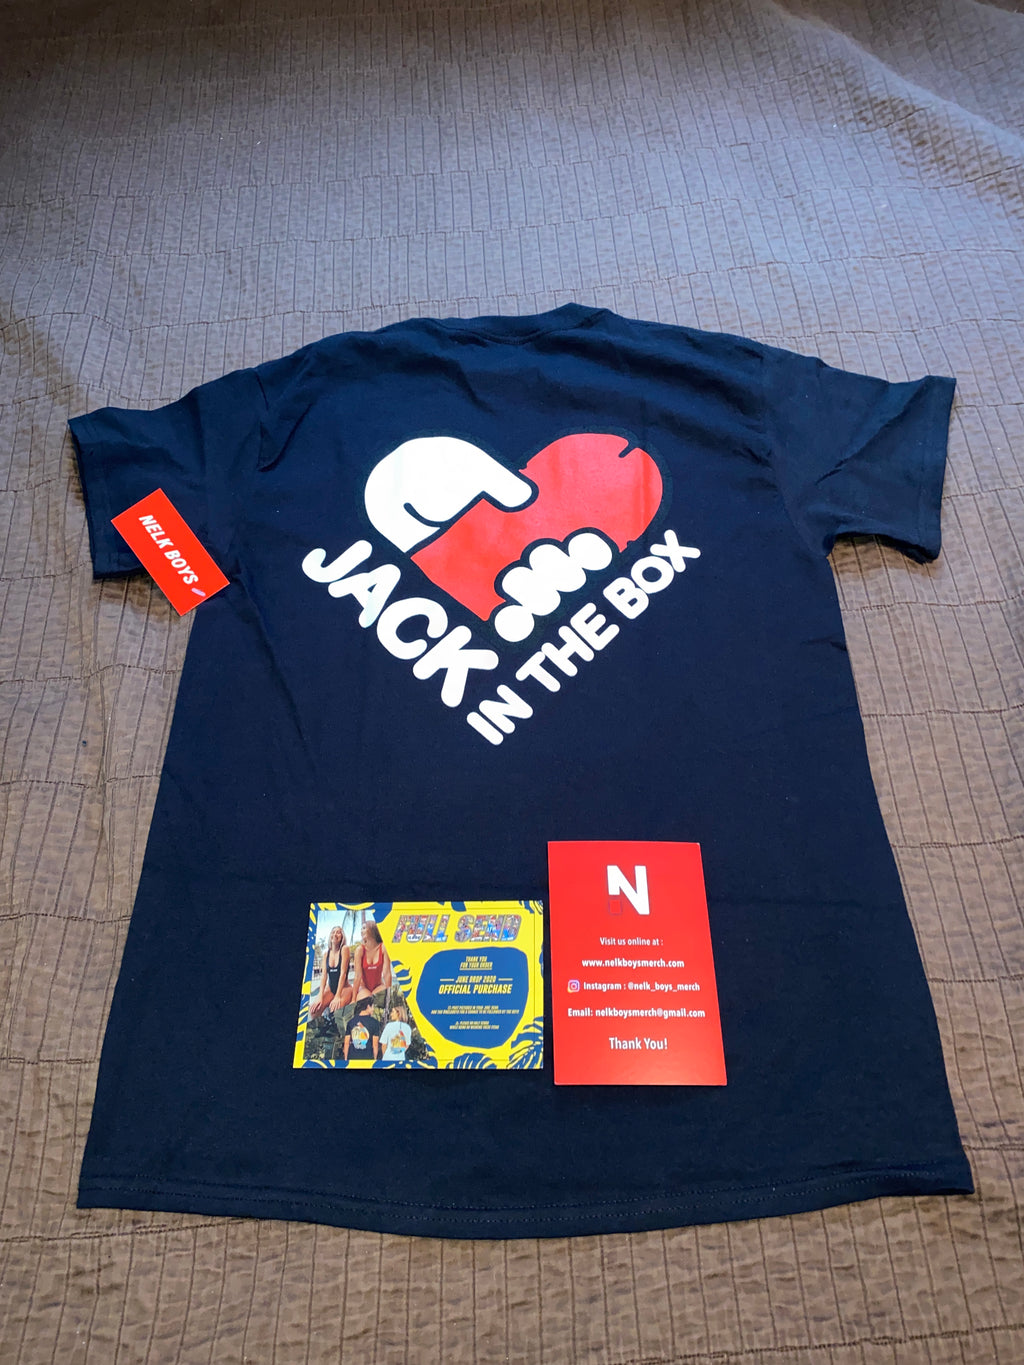 Nelkboysmerch Com 100 Authentic Nelk Merchandise For Resale Saying no will not stop you from seeing. authentic nelk merchandise for resale